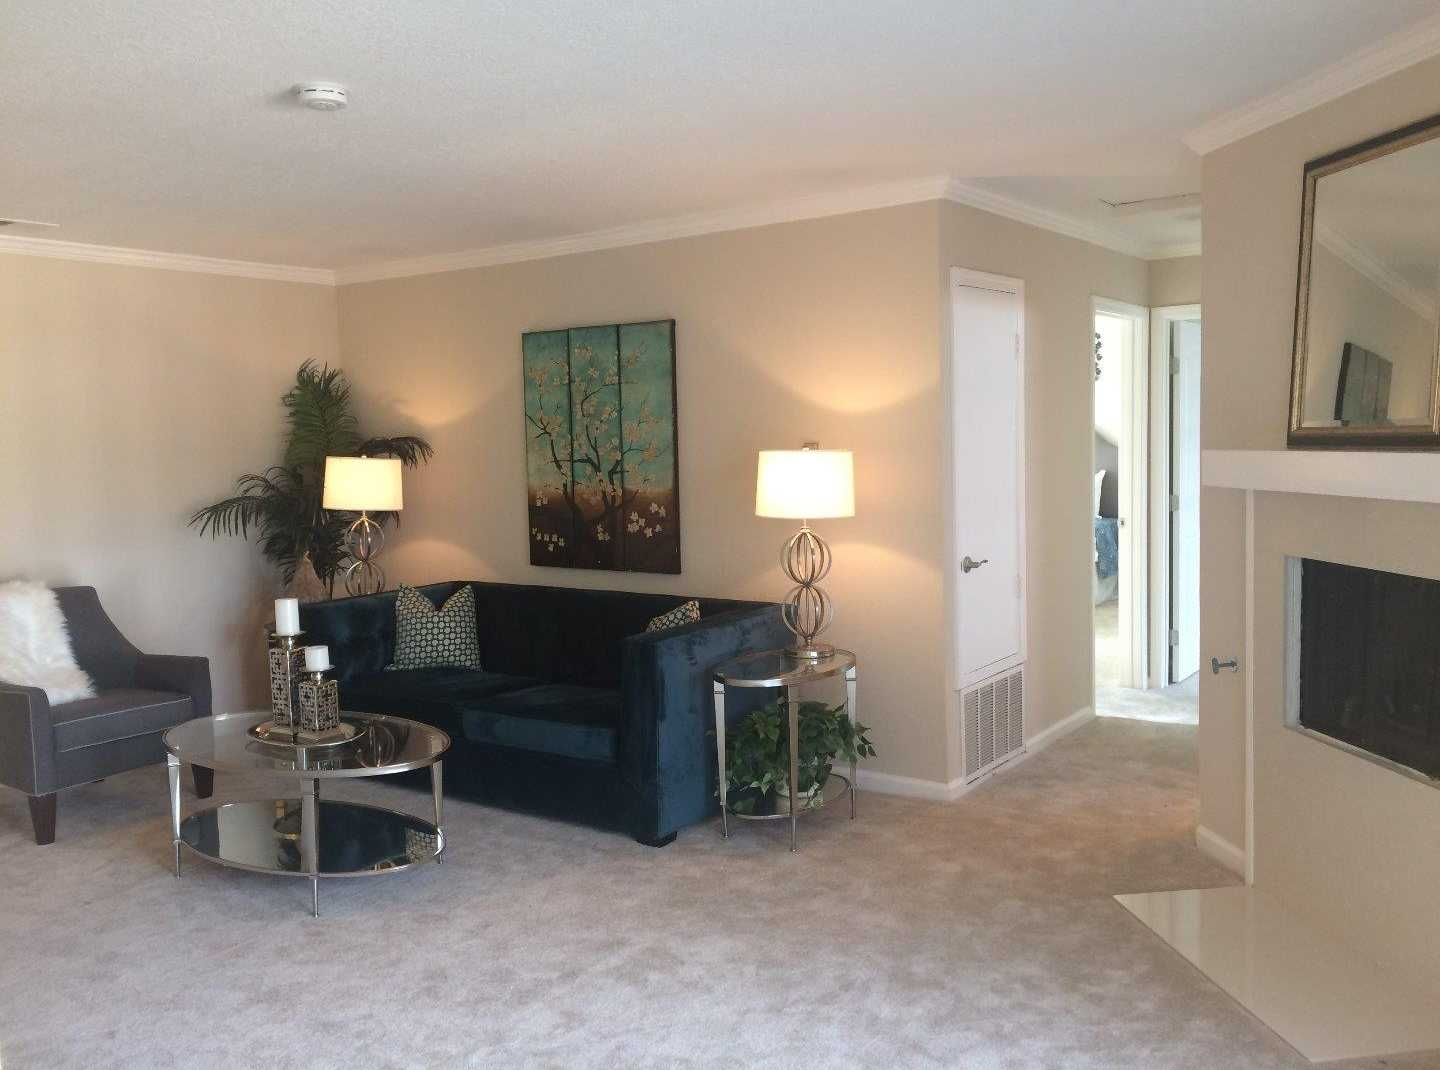 $788,888 - 2Br/2Ba -  for Sale in Sunnyvale